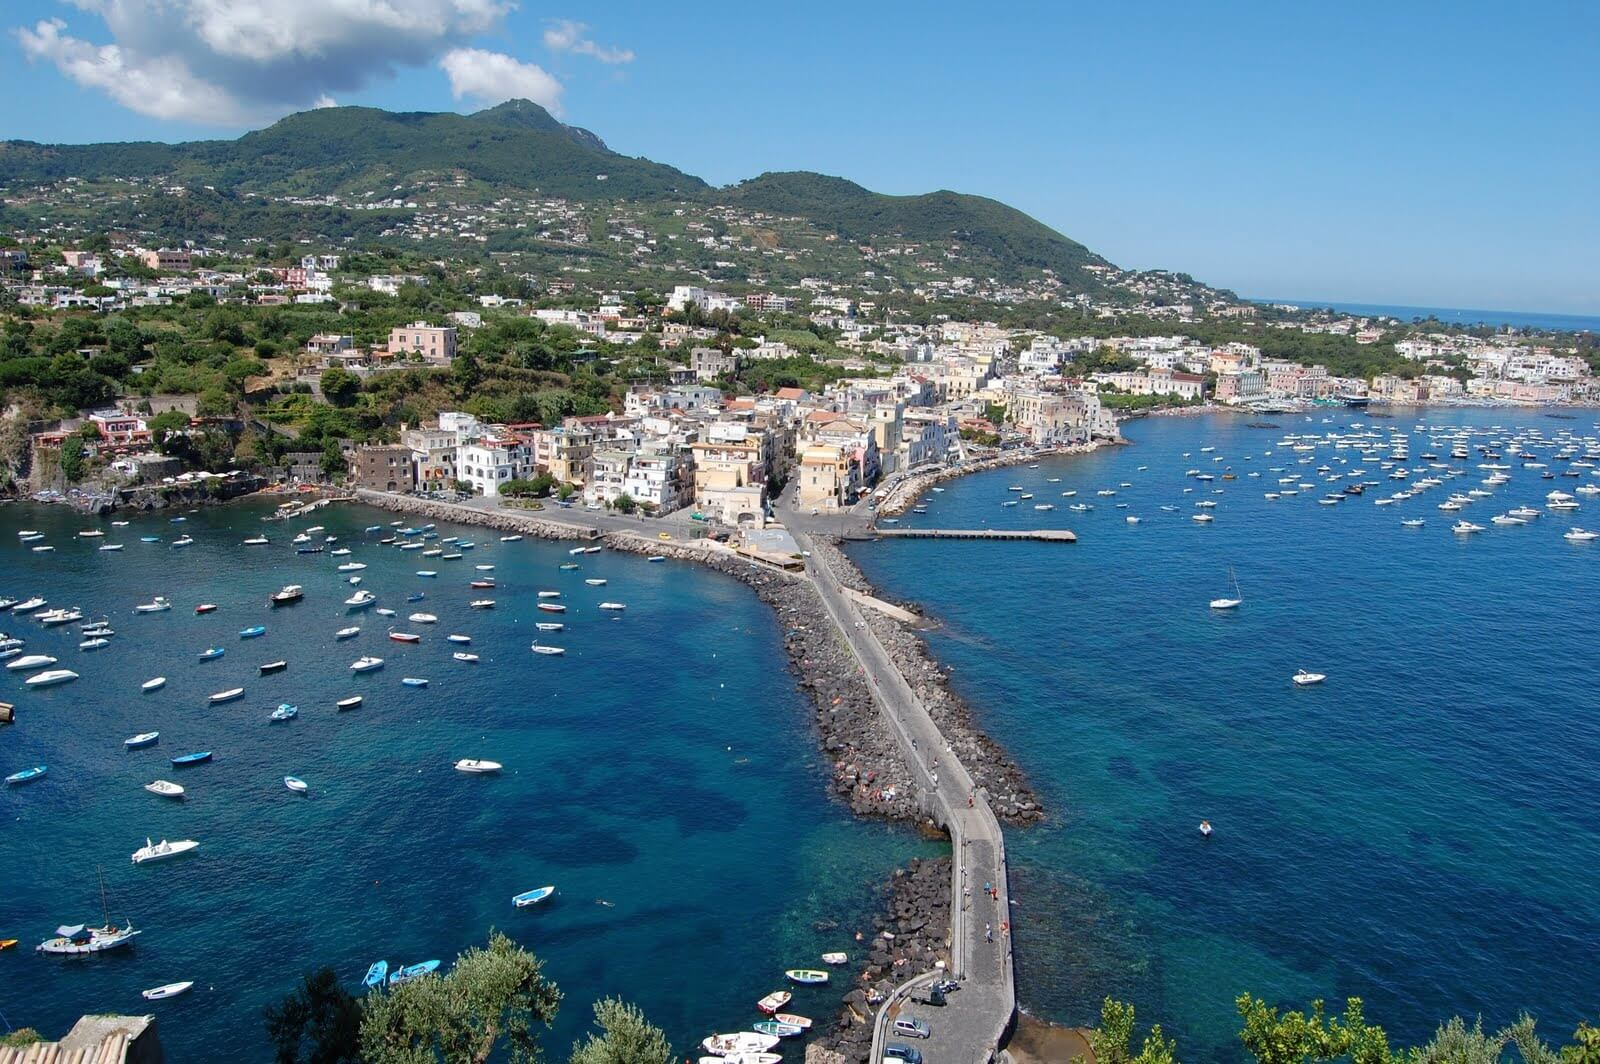 b_0_0_0_00_uploads_countries_Italy_Ischia_ıskjya